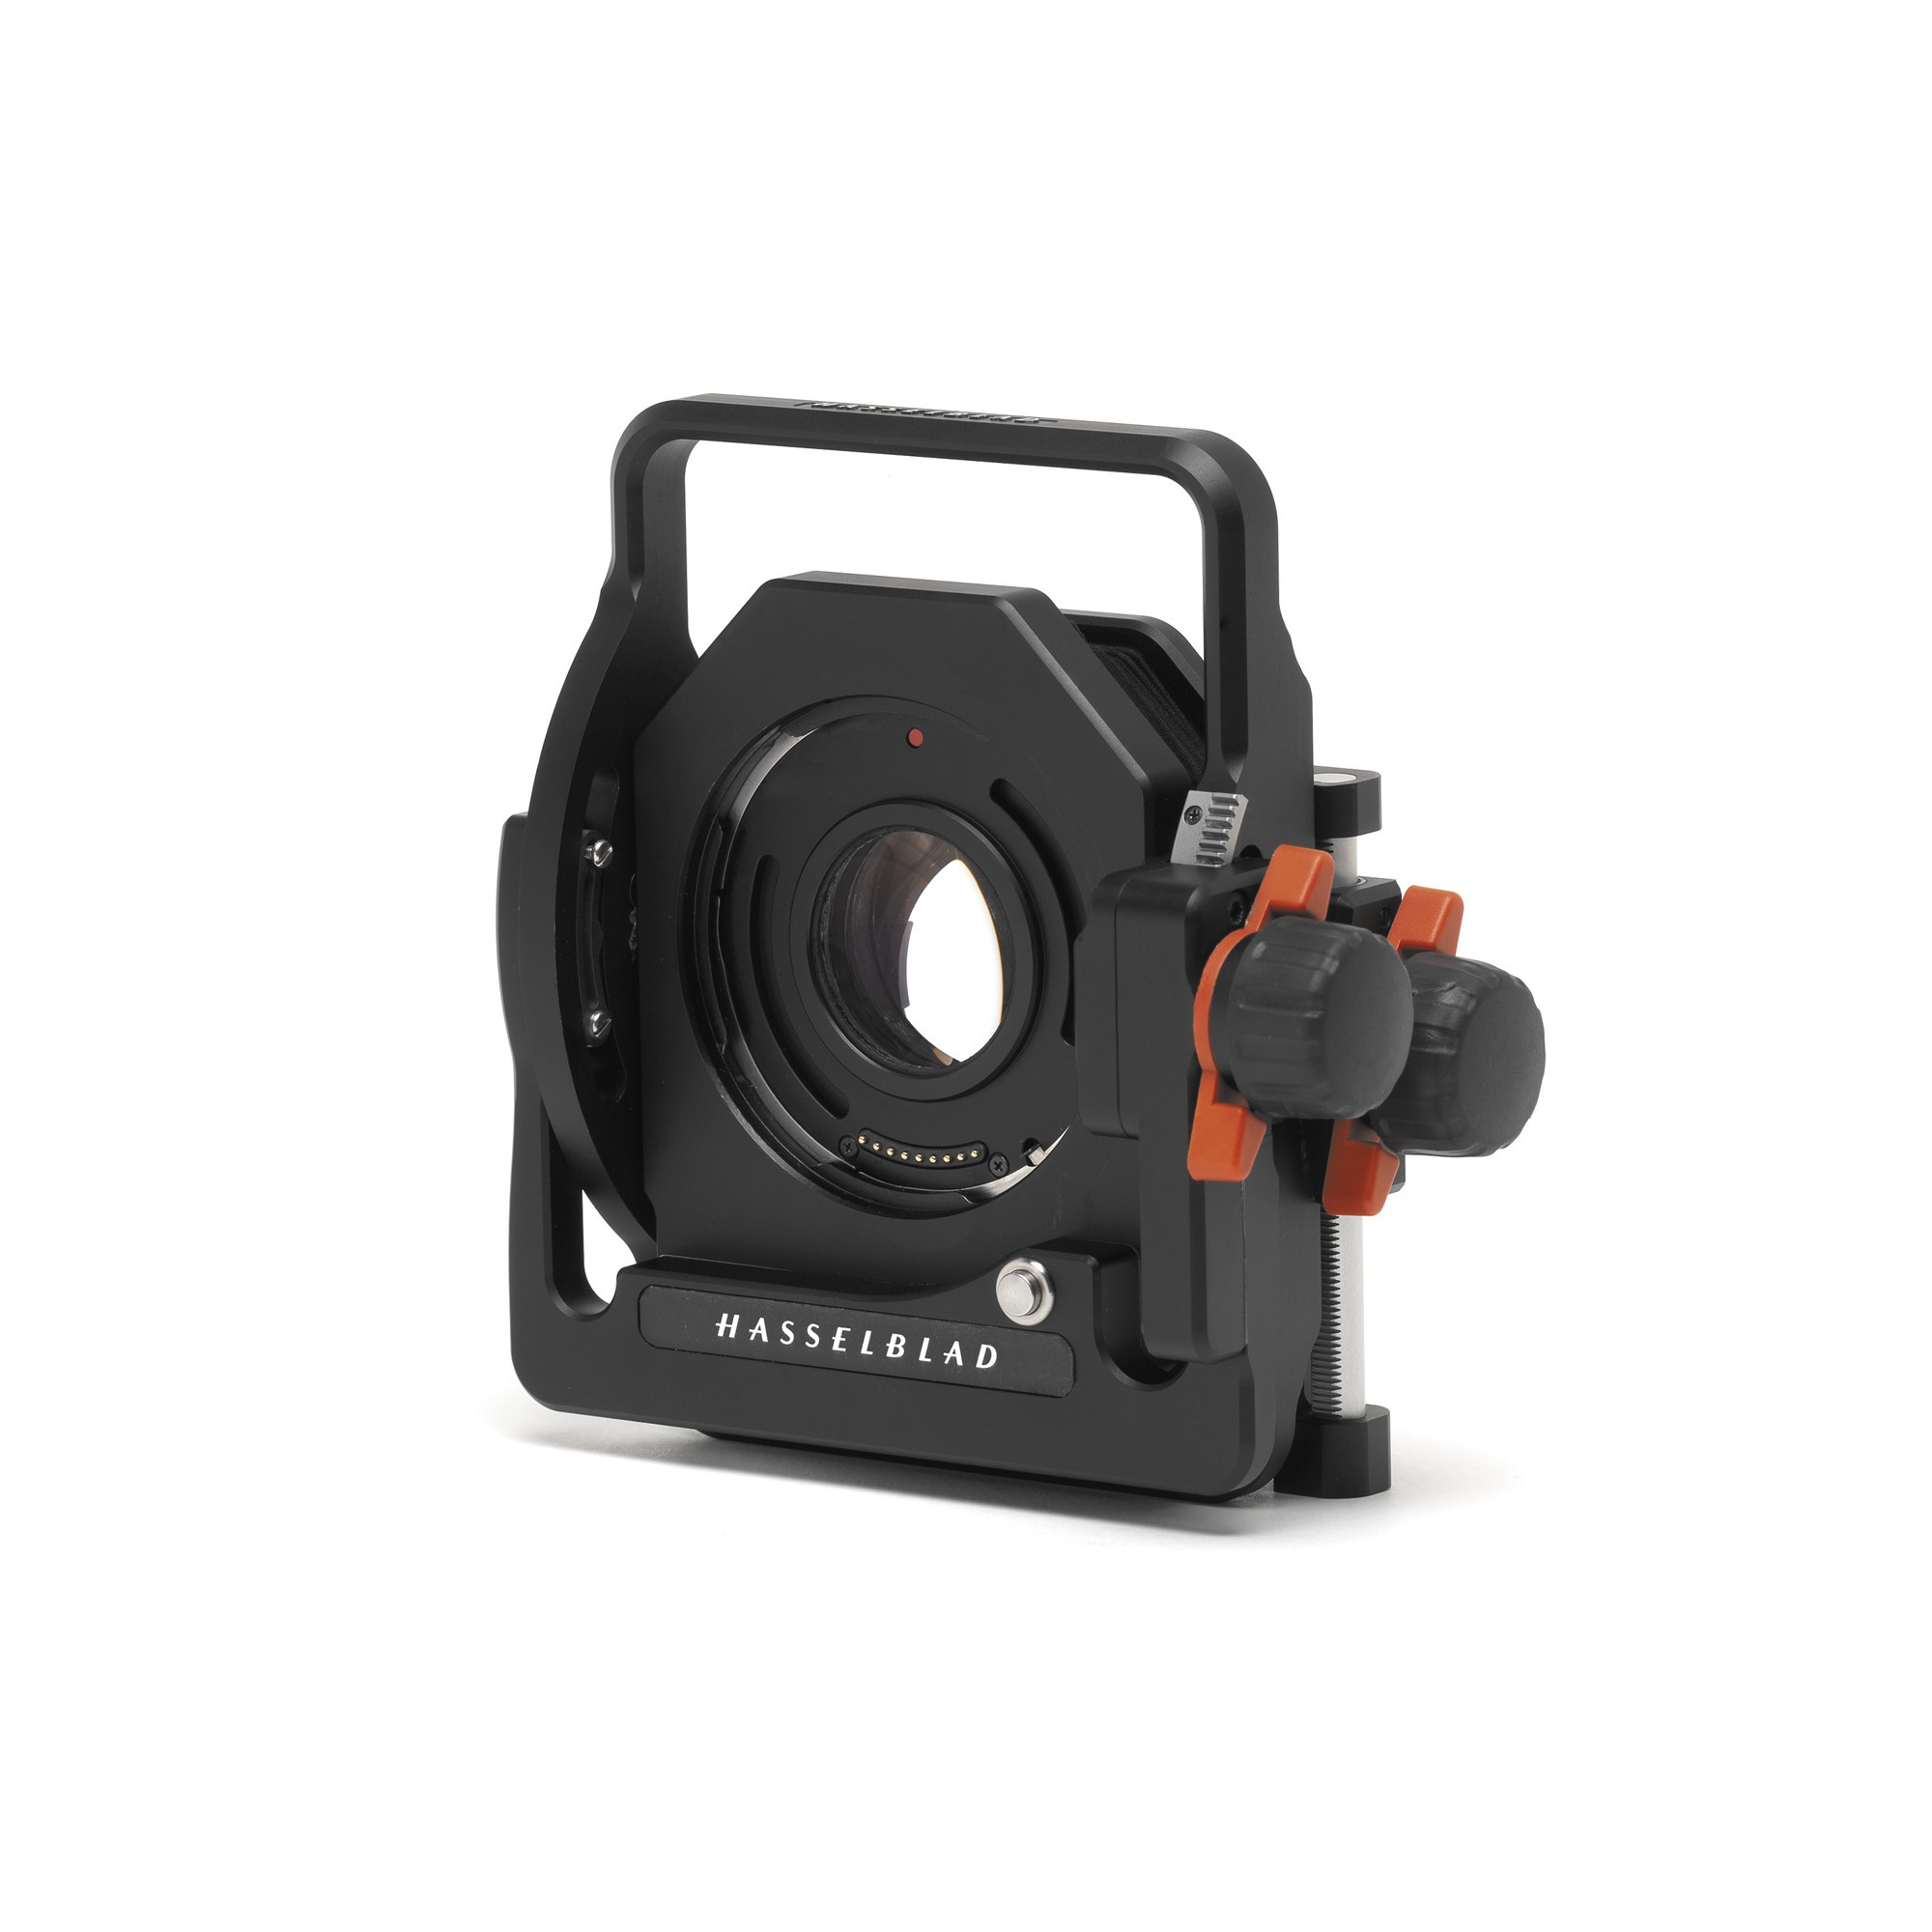 Hasselblad HTS 1,5 tilt and shift adapter available to rent / verhuur / location at 50.8 Studio • Belgïe, Belgique, Belgium, Hasselblad, Huur, Location, Louer, Photo, Rent, Rental, Strobe, Studio, Verhuur, Video